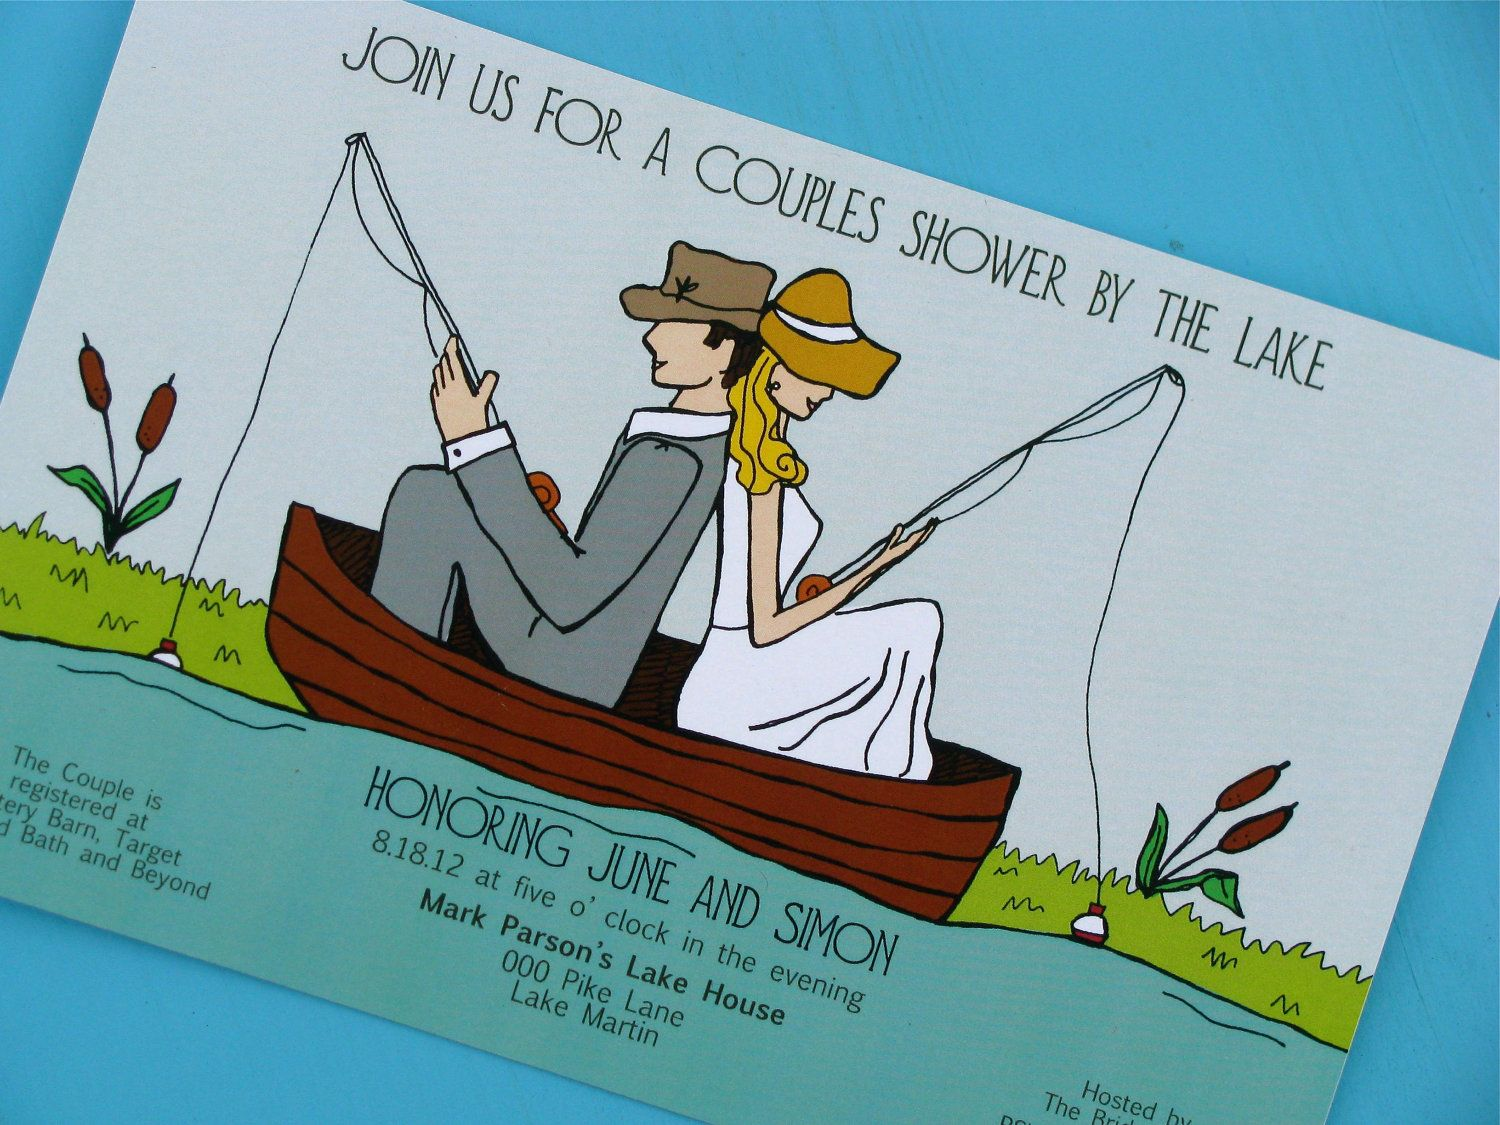 Vintage couples wedding shower by the lake invitation | Shower ...